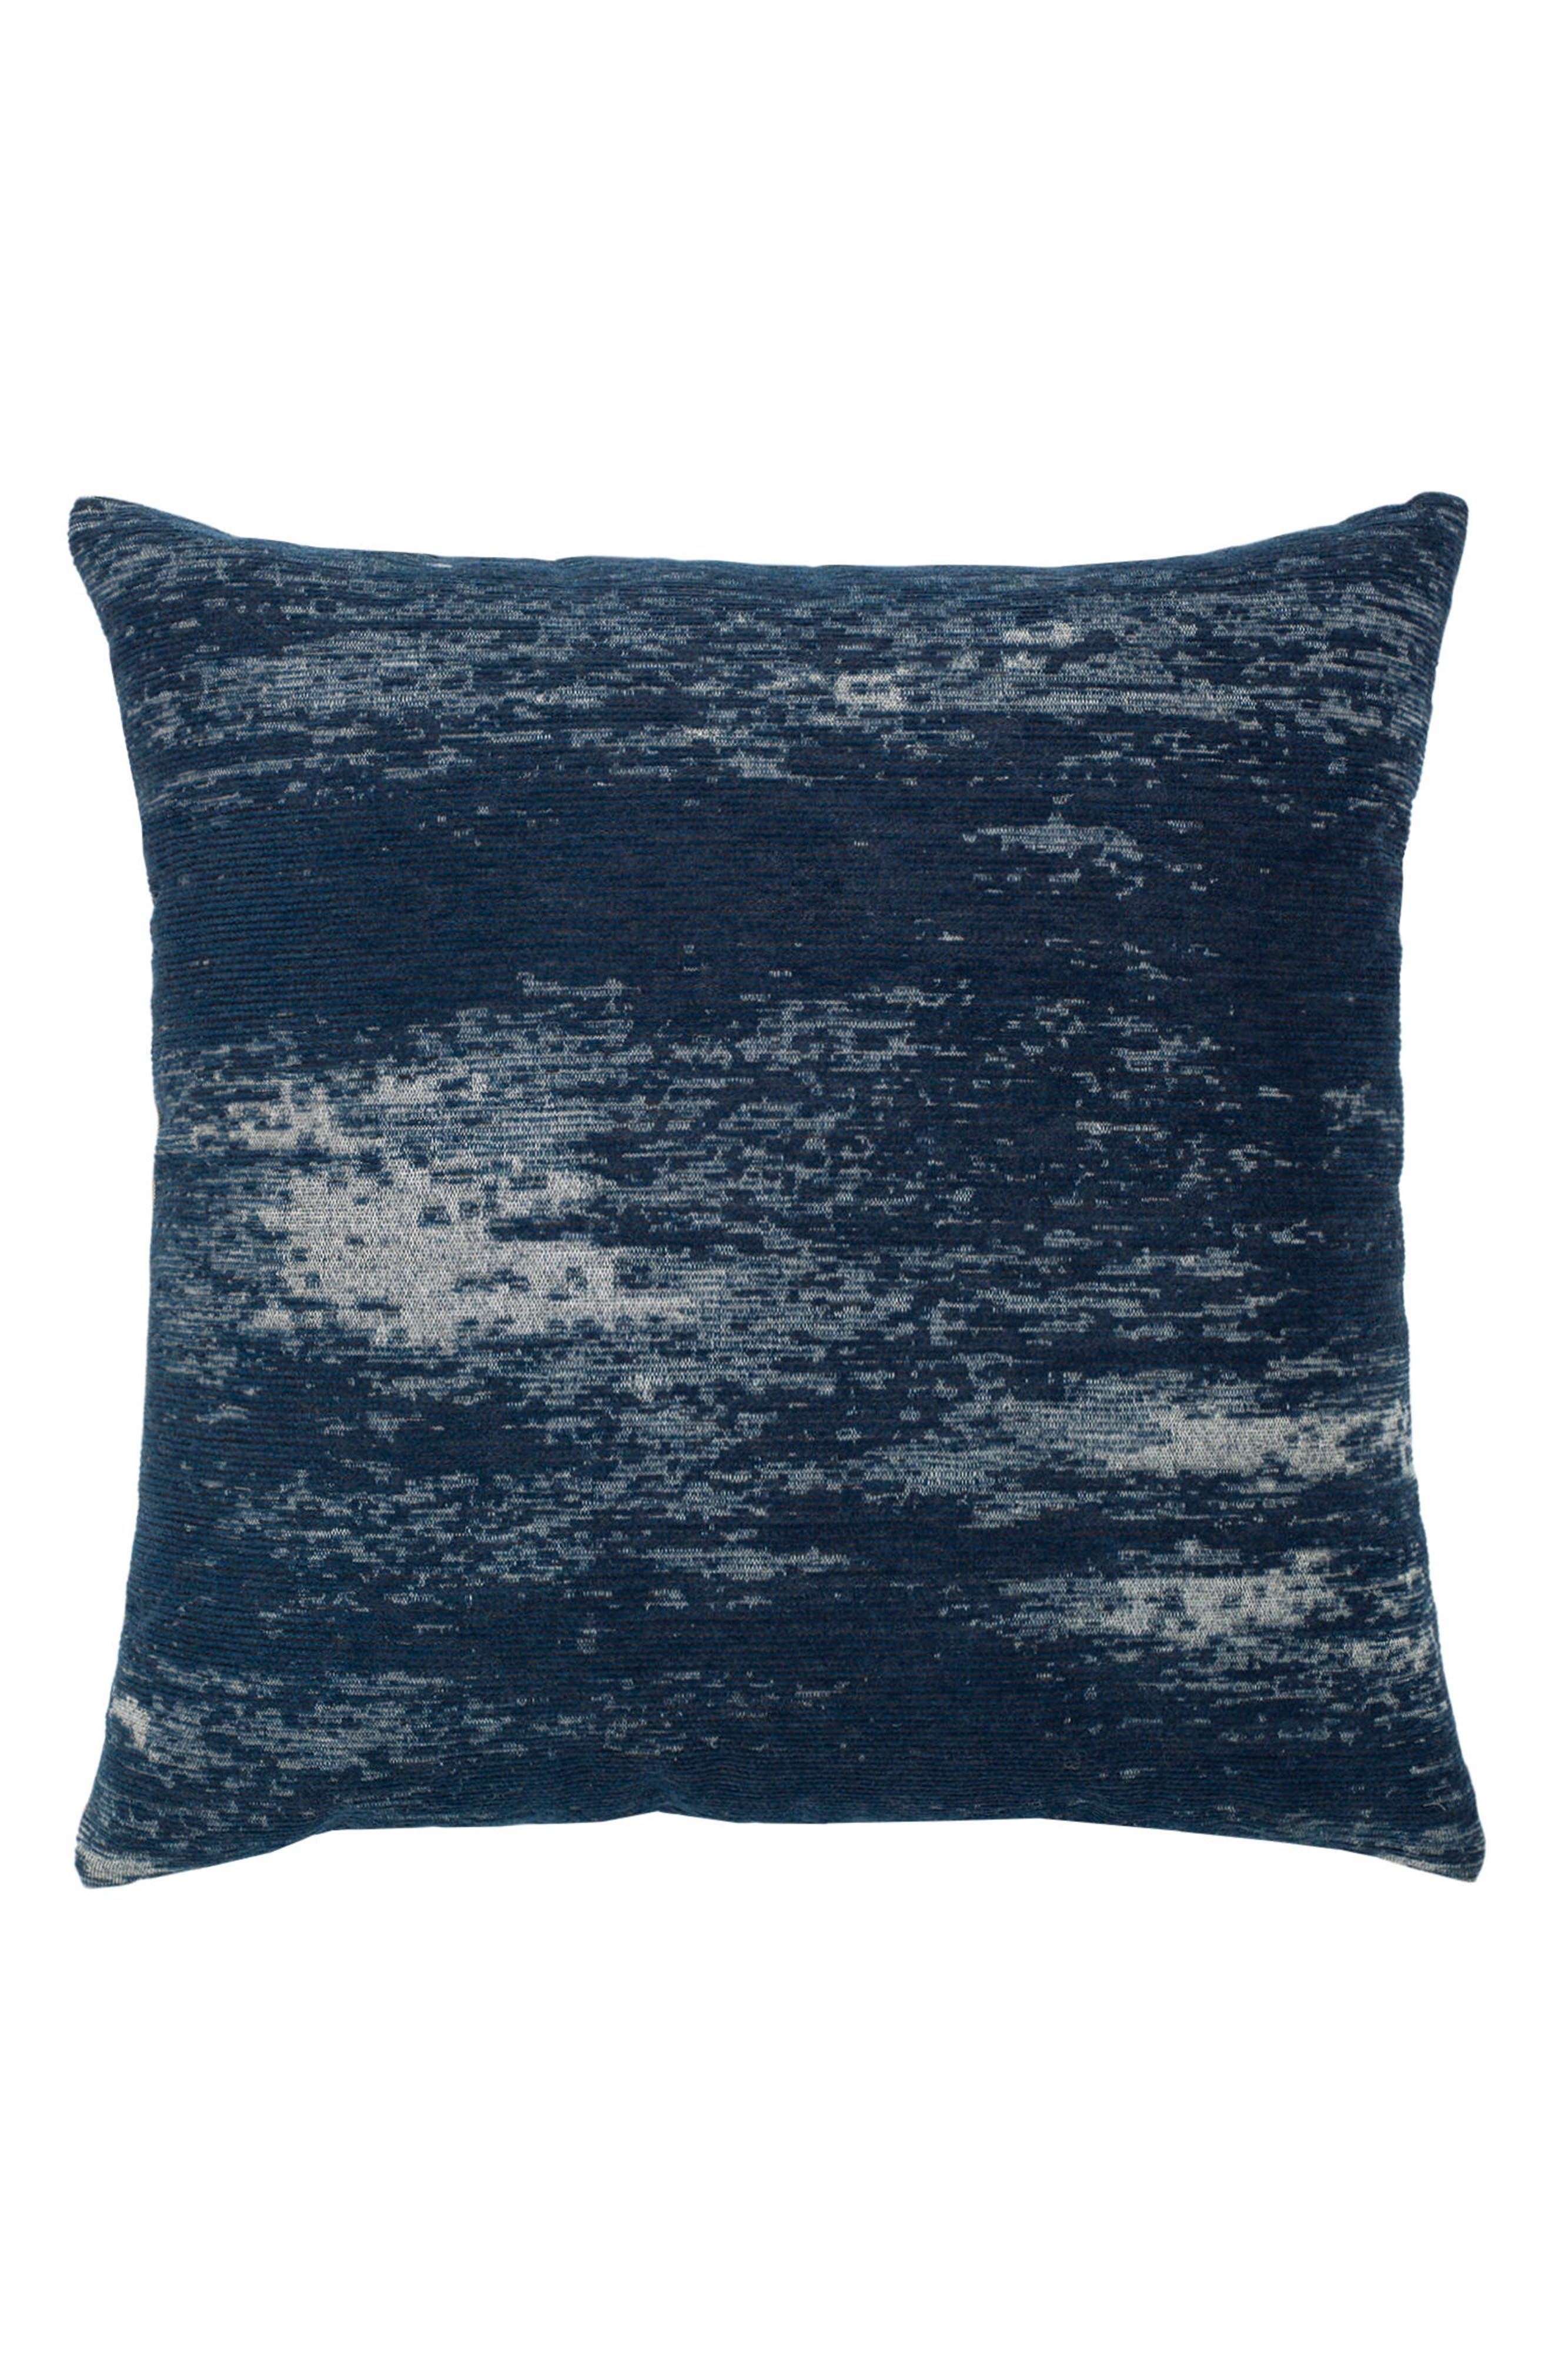 Alternate Image 1 Selected - Elaine Smith Distressed Indigo Indoor/Outdoor Accent Pillow